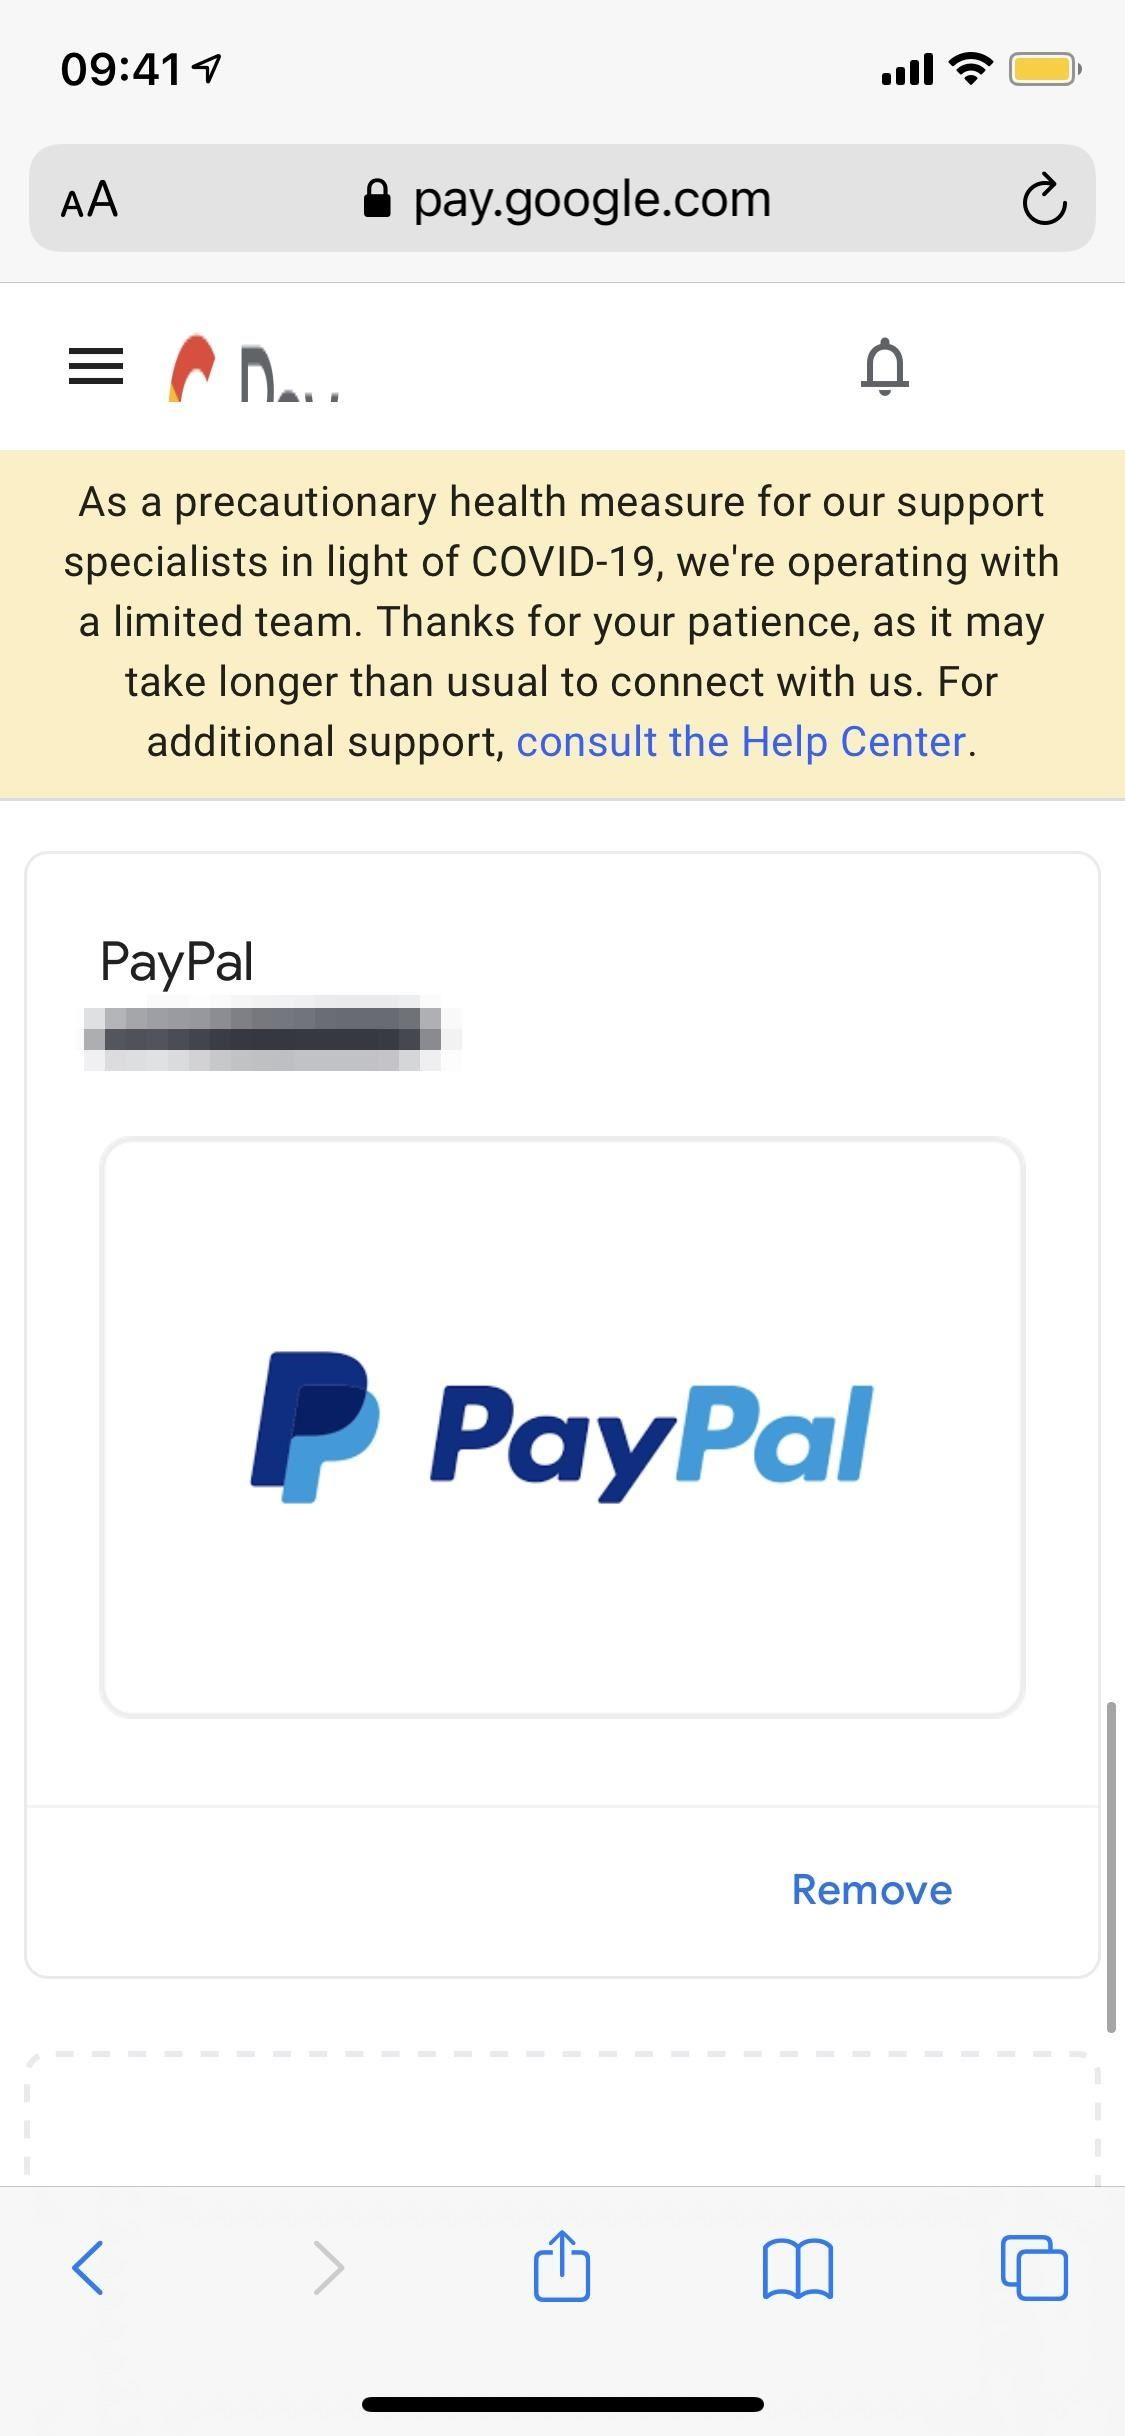 How to Add PayPal to Google Pay as a Payment Method to Use in Gmail, YouTube & Other Google Services